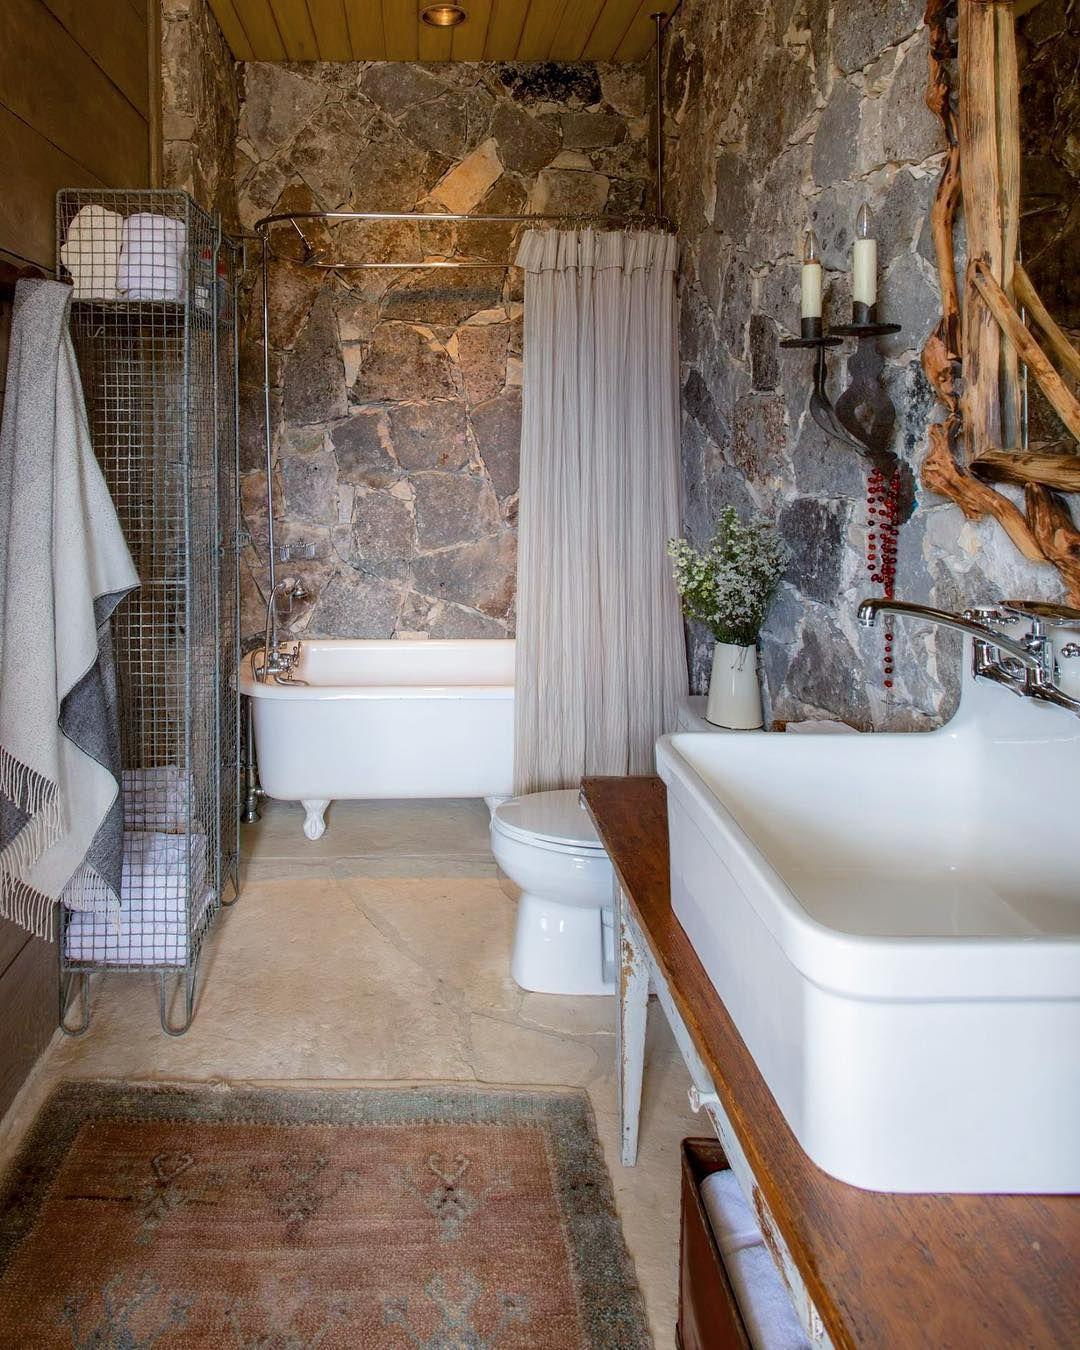 Top 20 Interior Designers/Architects from Houston, TX interior design Interior Designers/Architects from Houston, a look at Bathroom Designs – Top 20 Top 20 Interior DesignersArchitects from Houston TX Ginger Barber MV